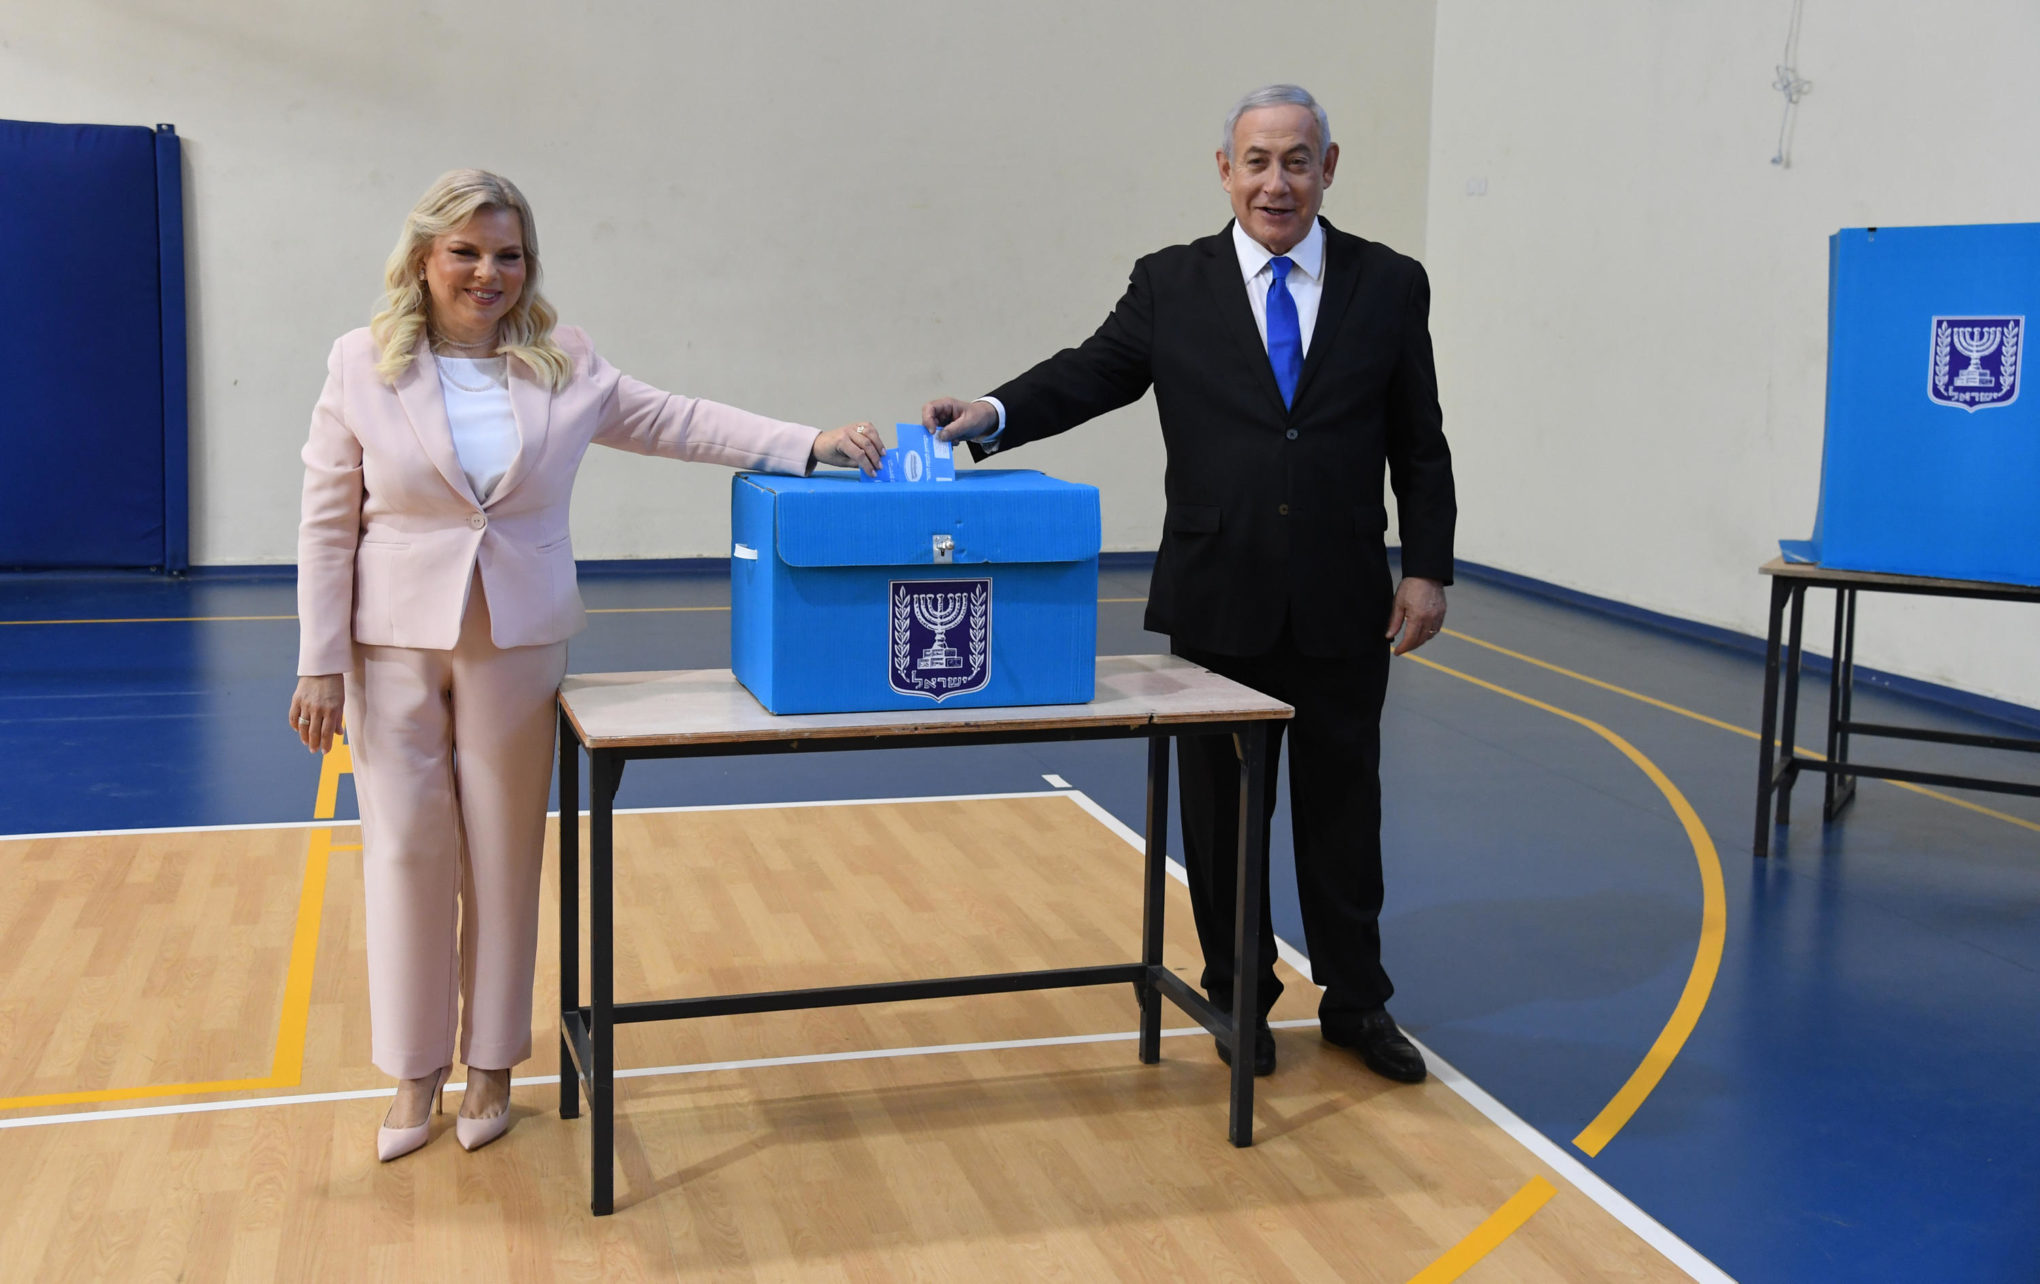 Israeli Prime Minister Benjamin Netanyahu and his wife Sara cast their votes this morning in Jerusalem. (Photo: Haim Zach / GPO)